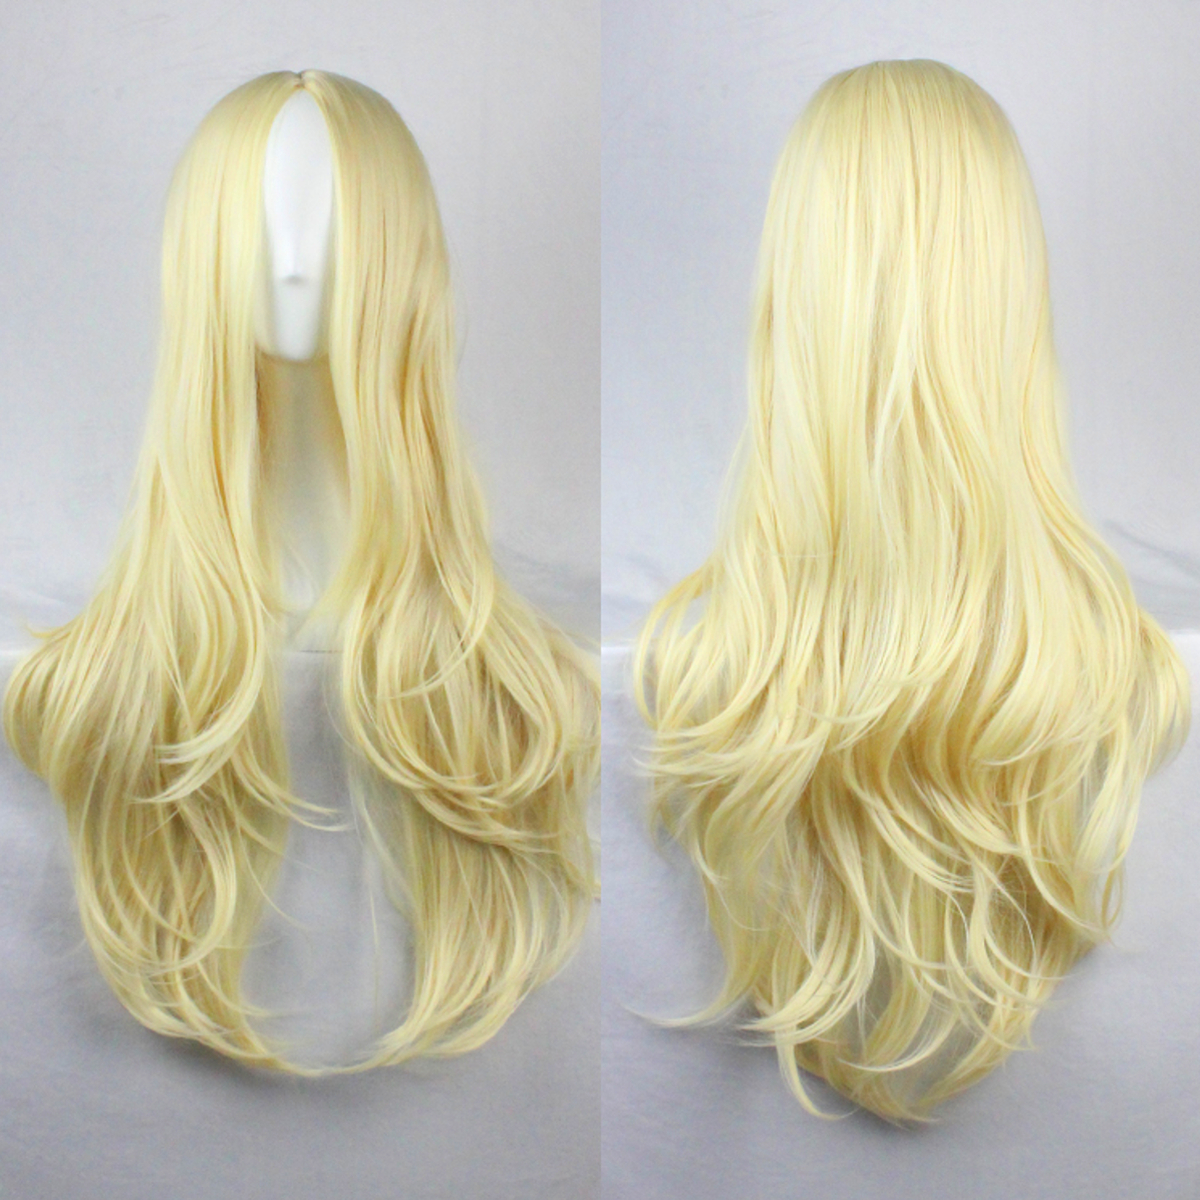 26'' Anime Long Curly Wavy Synthetic Hair Full Wig For Party Cosplay Using